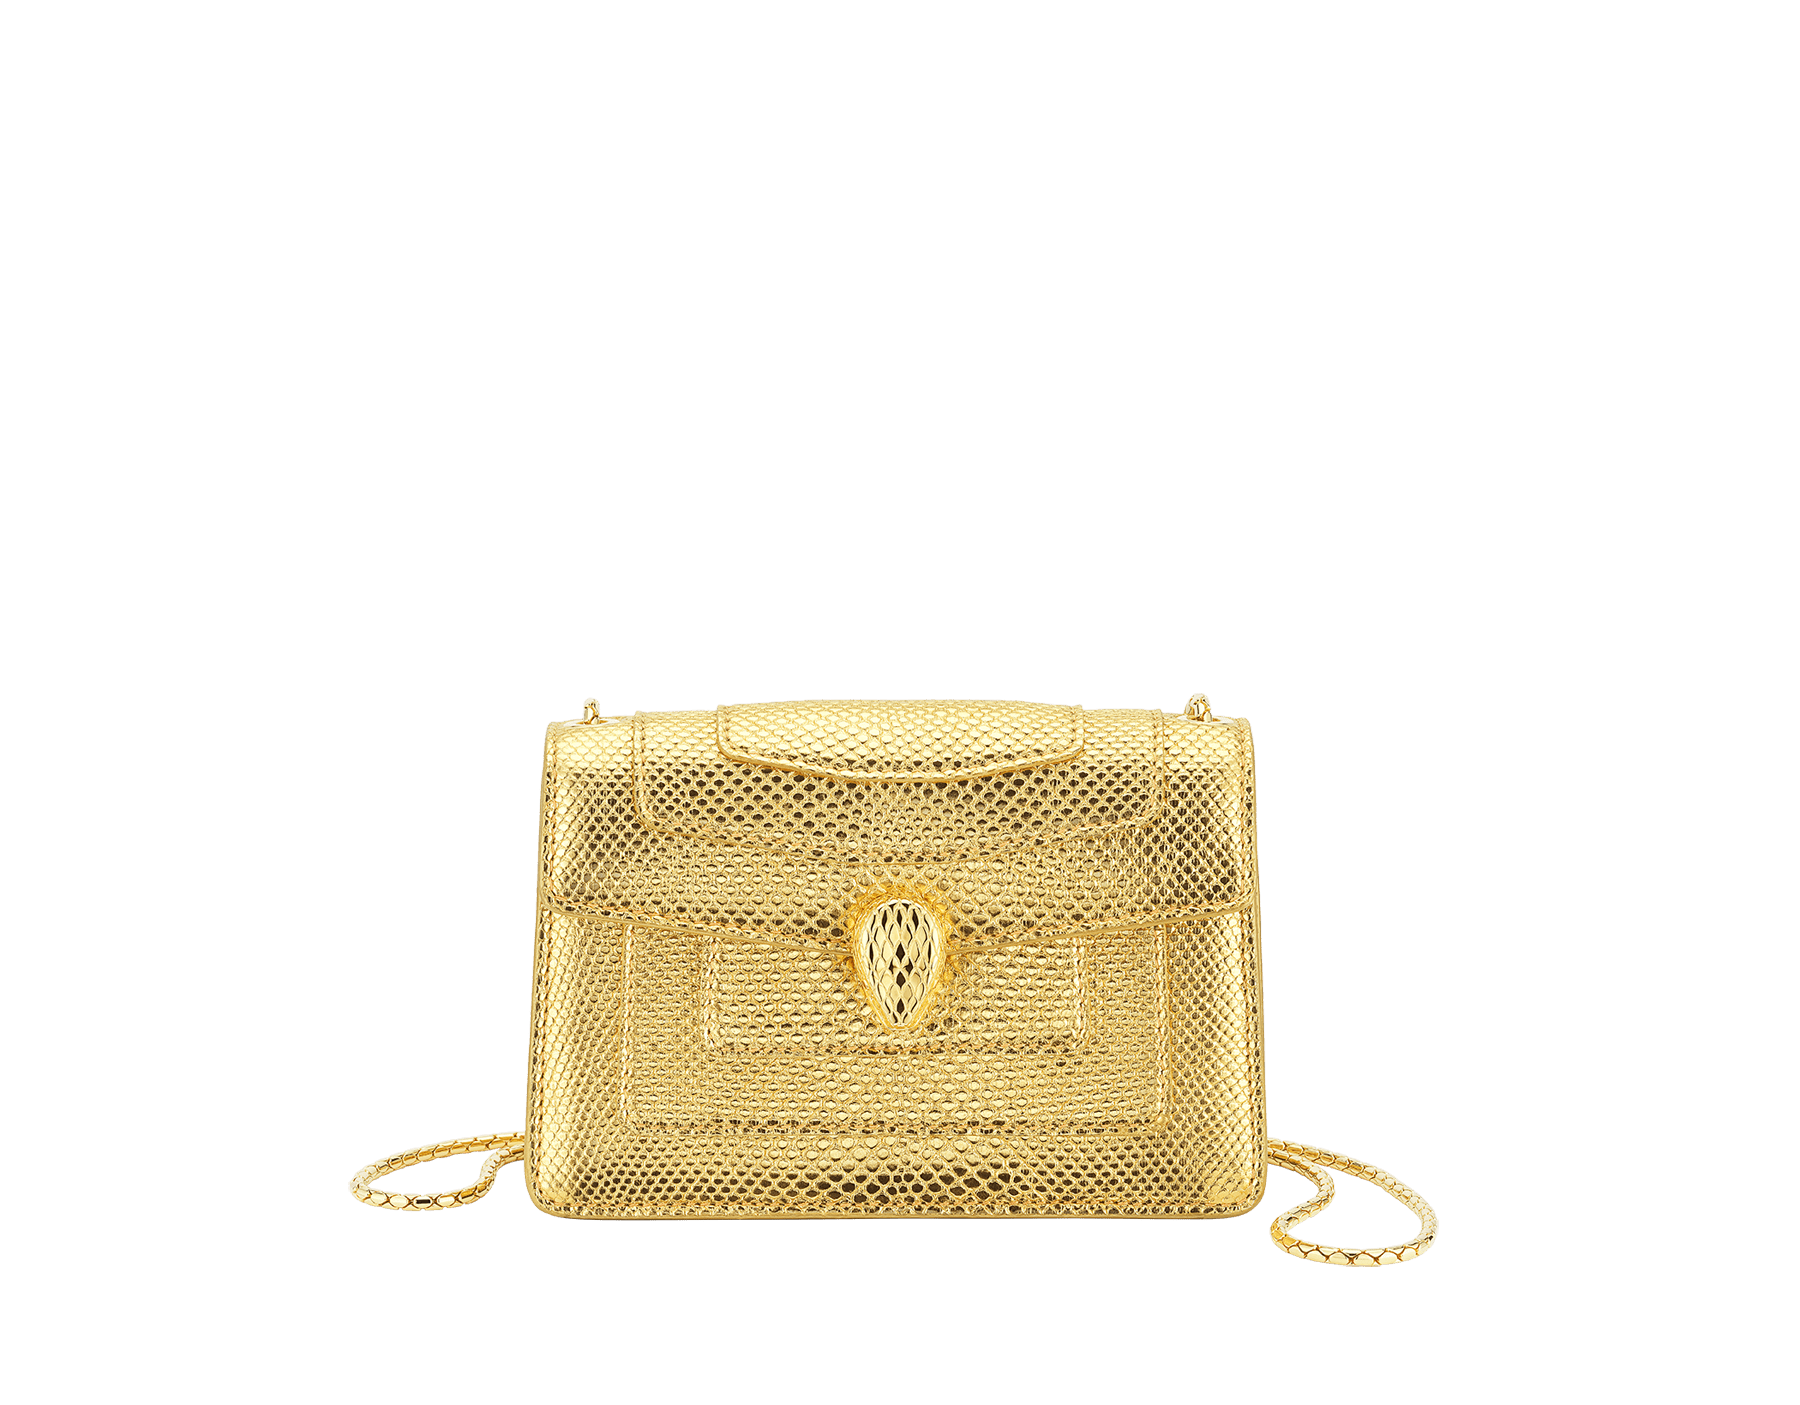 """Serpenti Forever"" mini crossbody bag in ""Molten"" gold karung skin with black nappa leather inner lining, offering a touch of radiance for the Winter Holidays. New Serpenti head closure in gold-plated brass, complete with ruby-red enamel eyes. 290619 image 1"